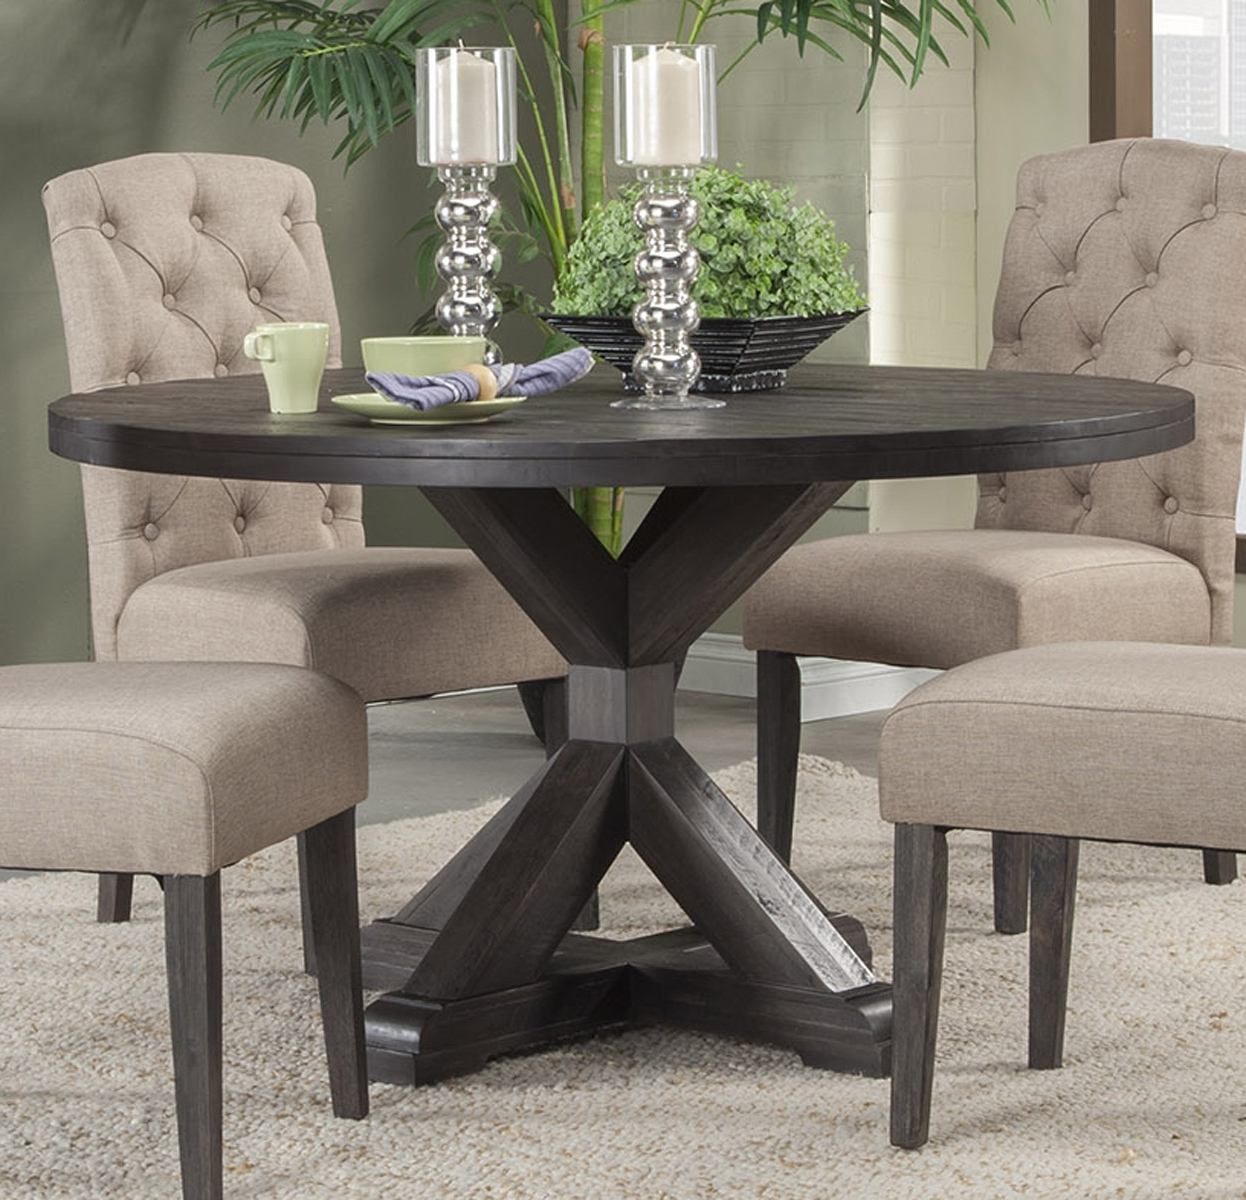 Preferred Alpine Furniture Newberry Round Dining Table In Salvaged Grey 1468 With Dining Tables Grey Chairs (View 8 of 25)